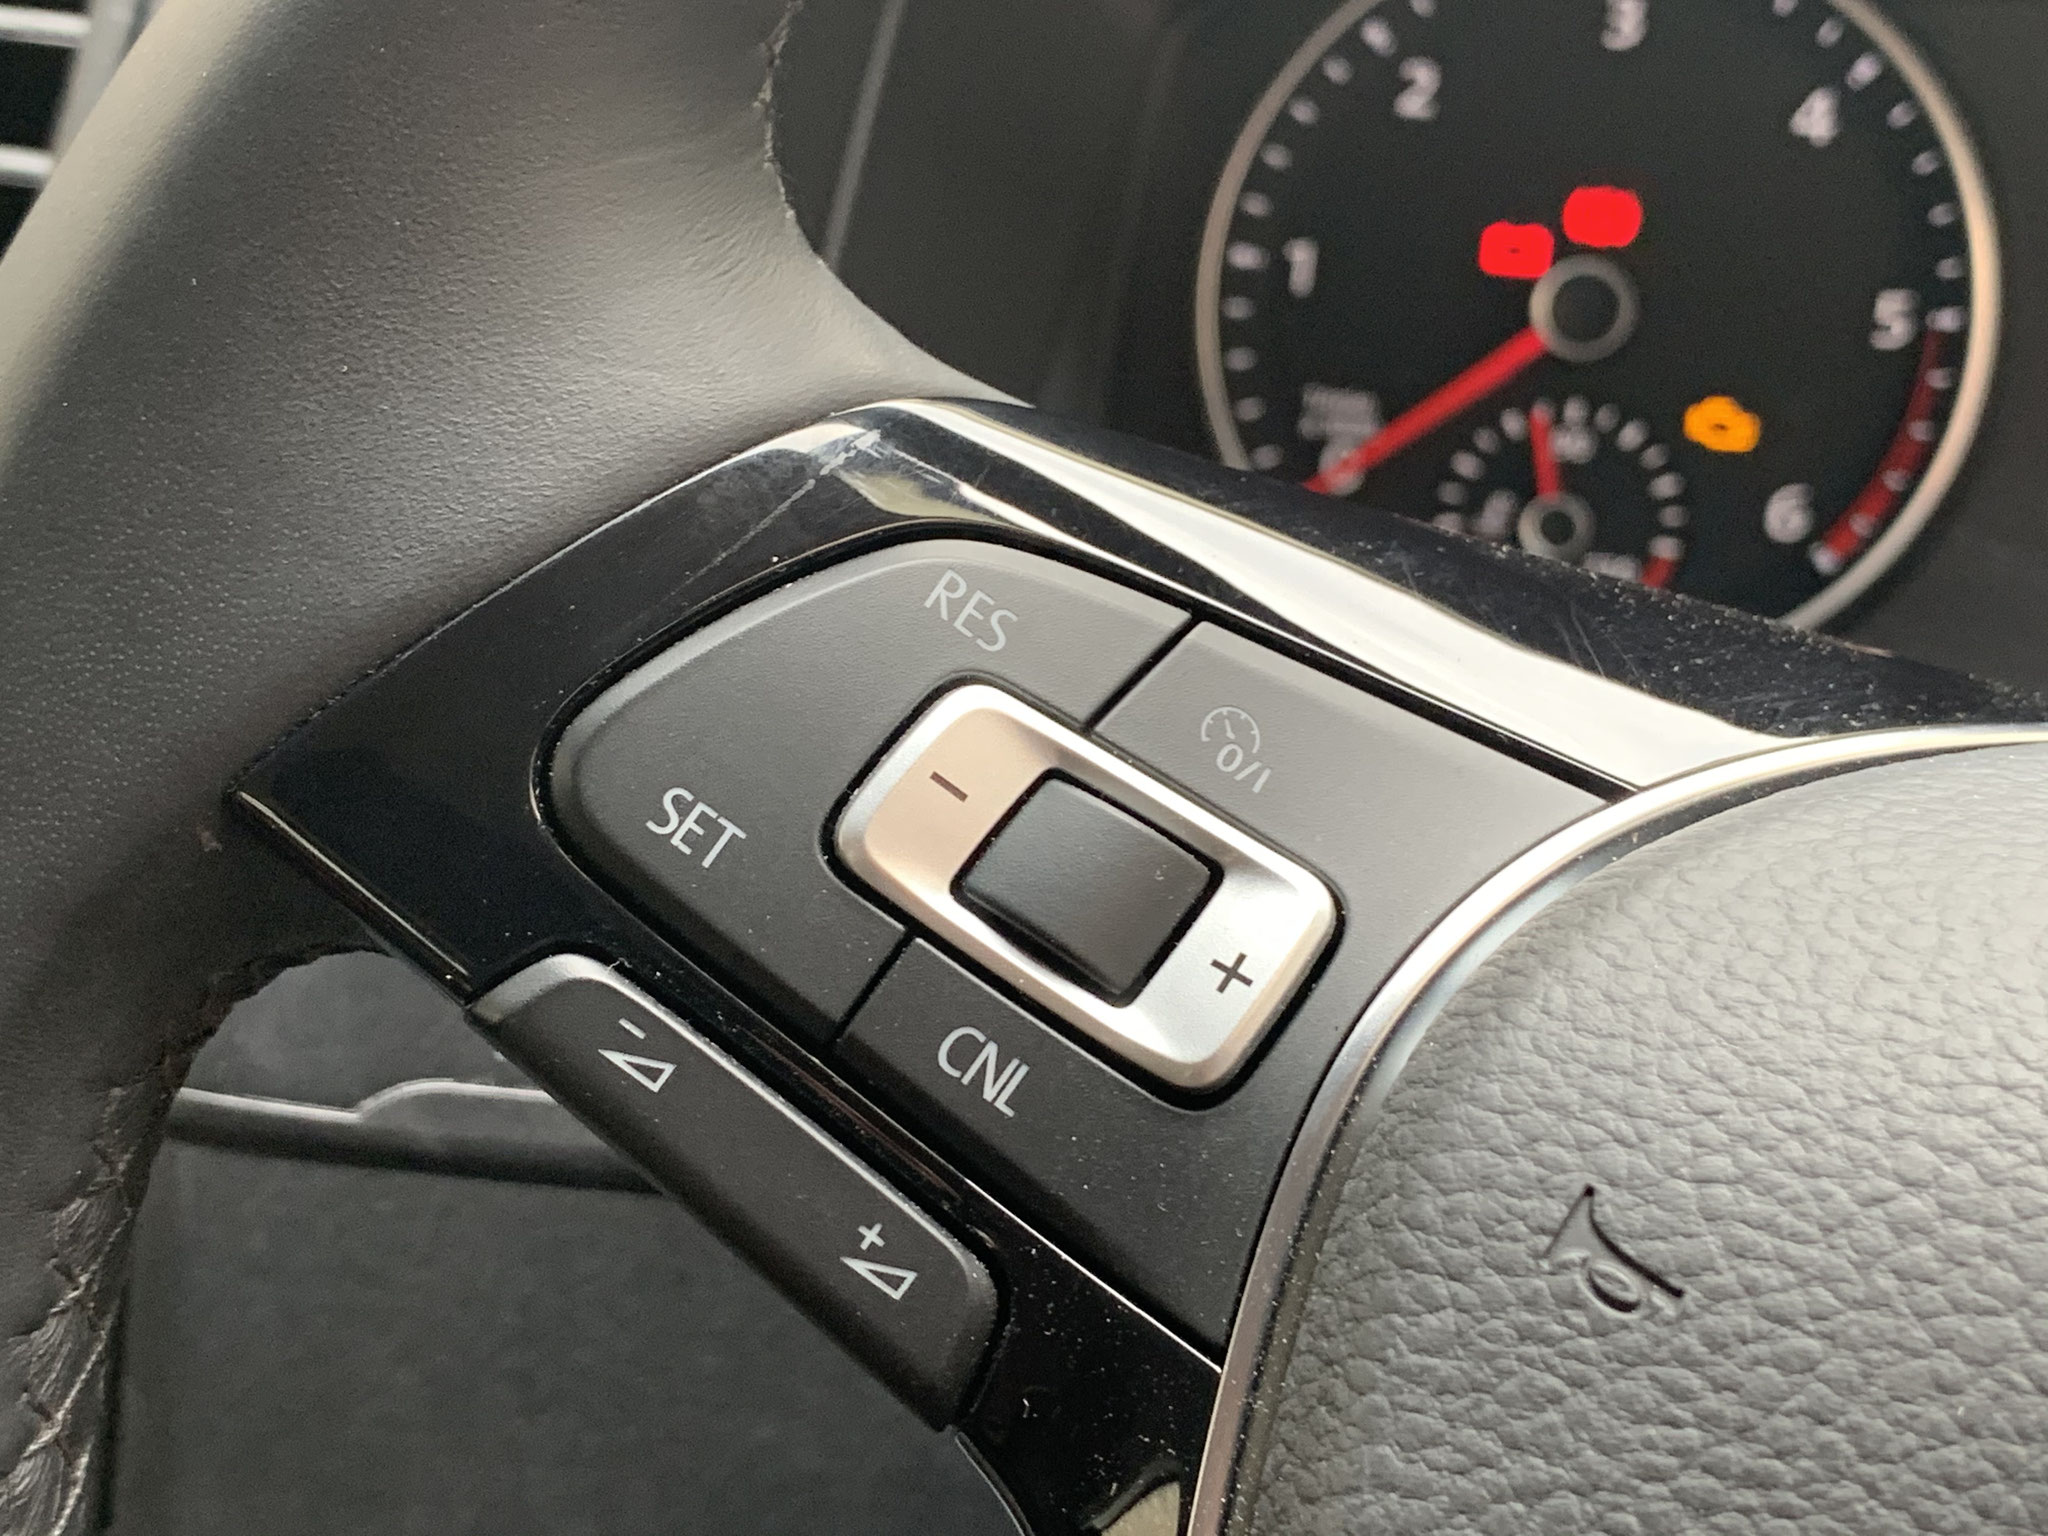 Cruise and audio controls